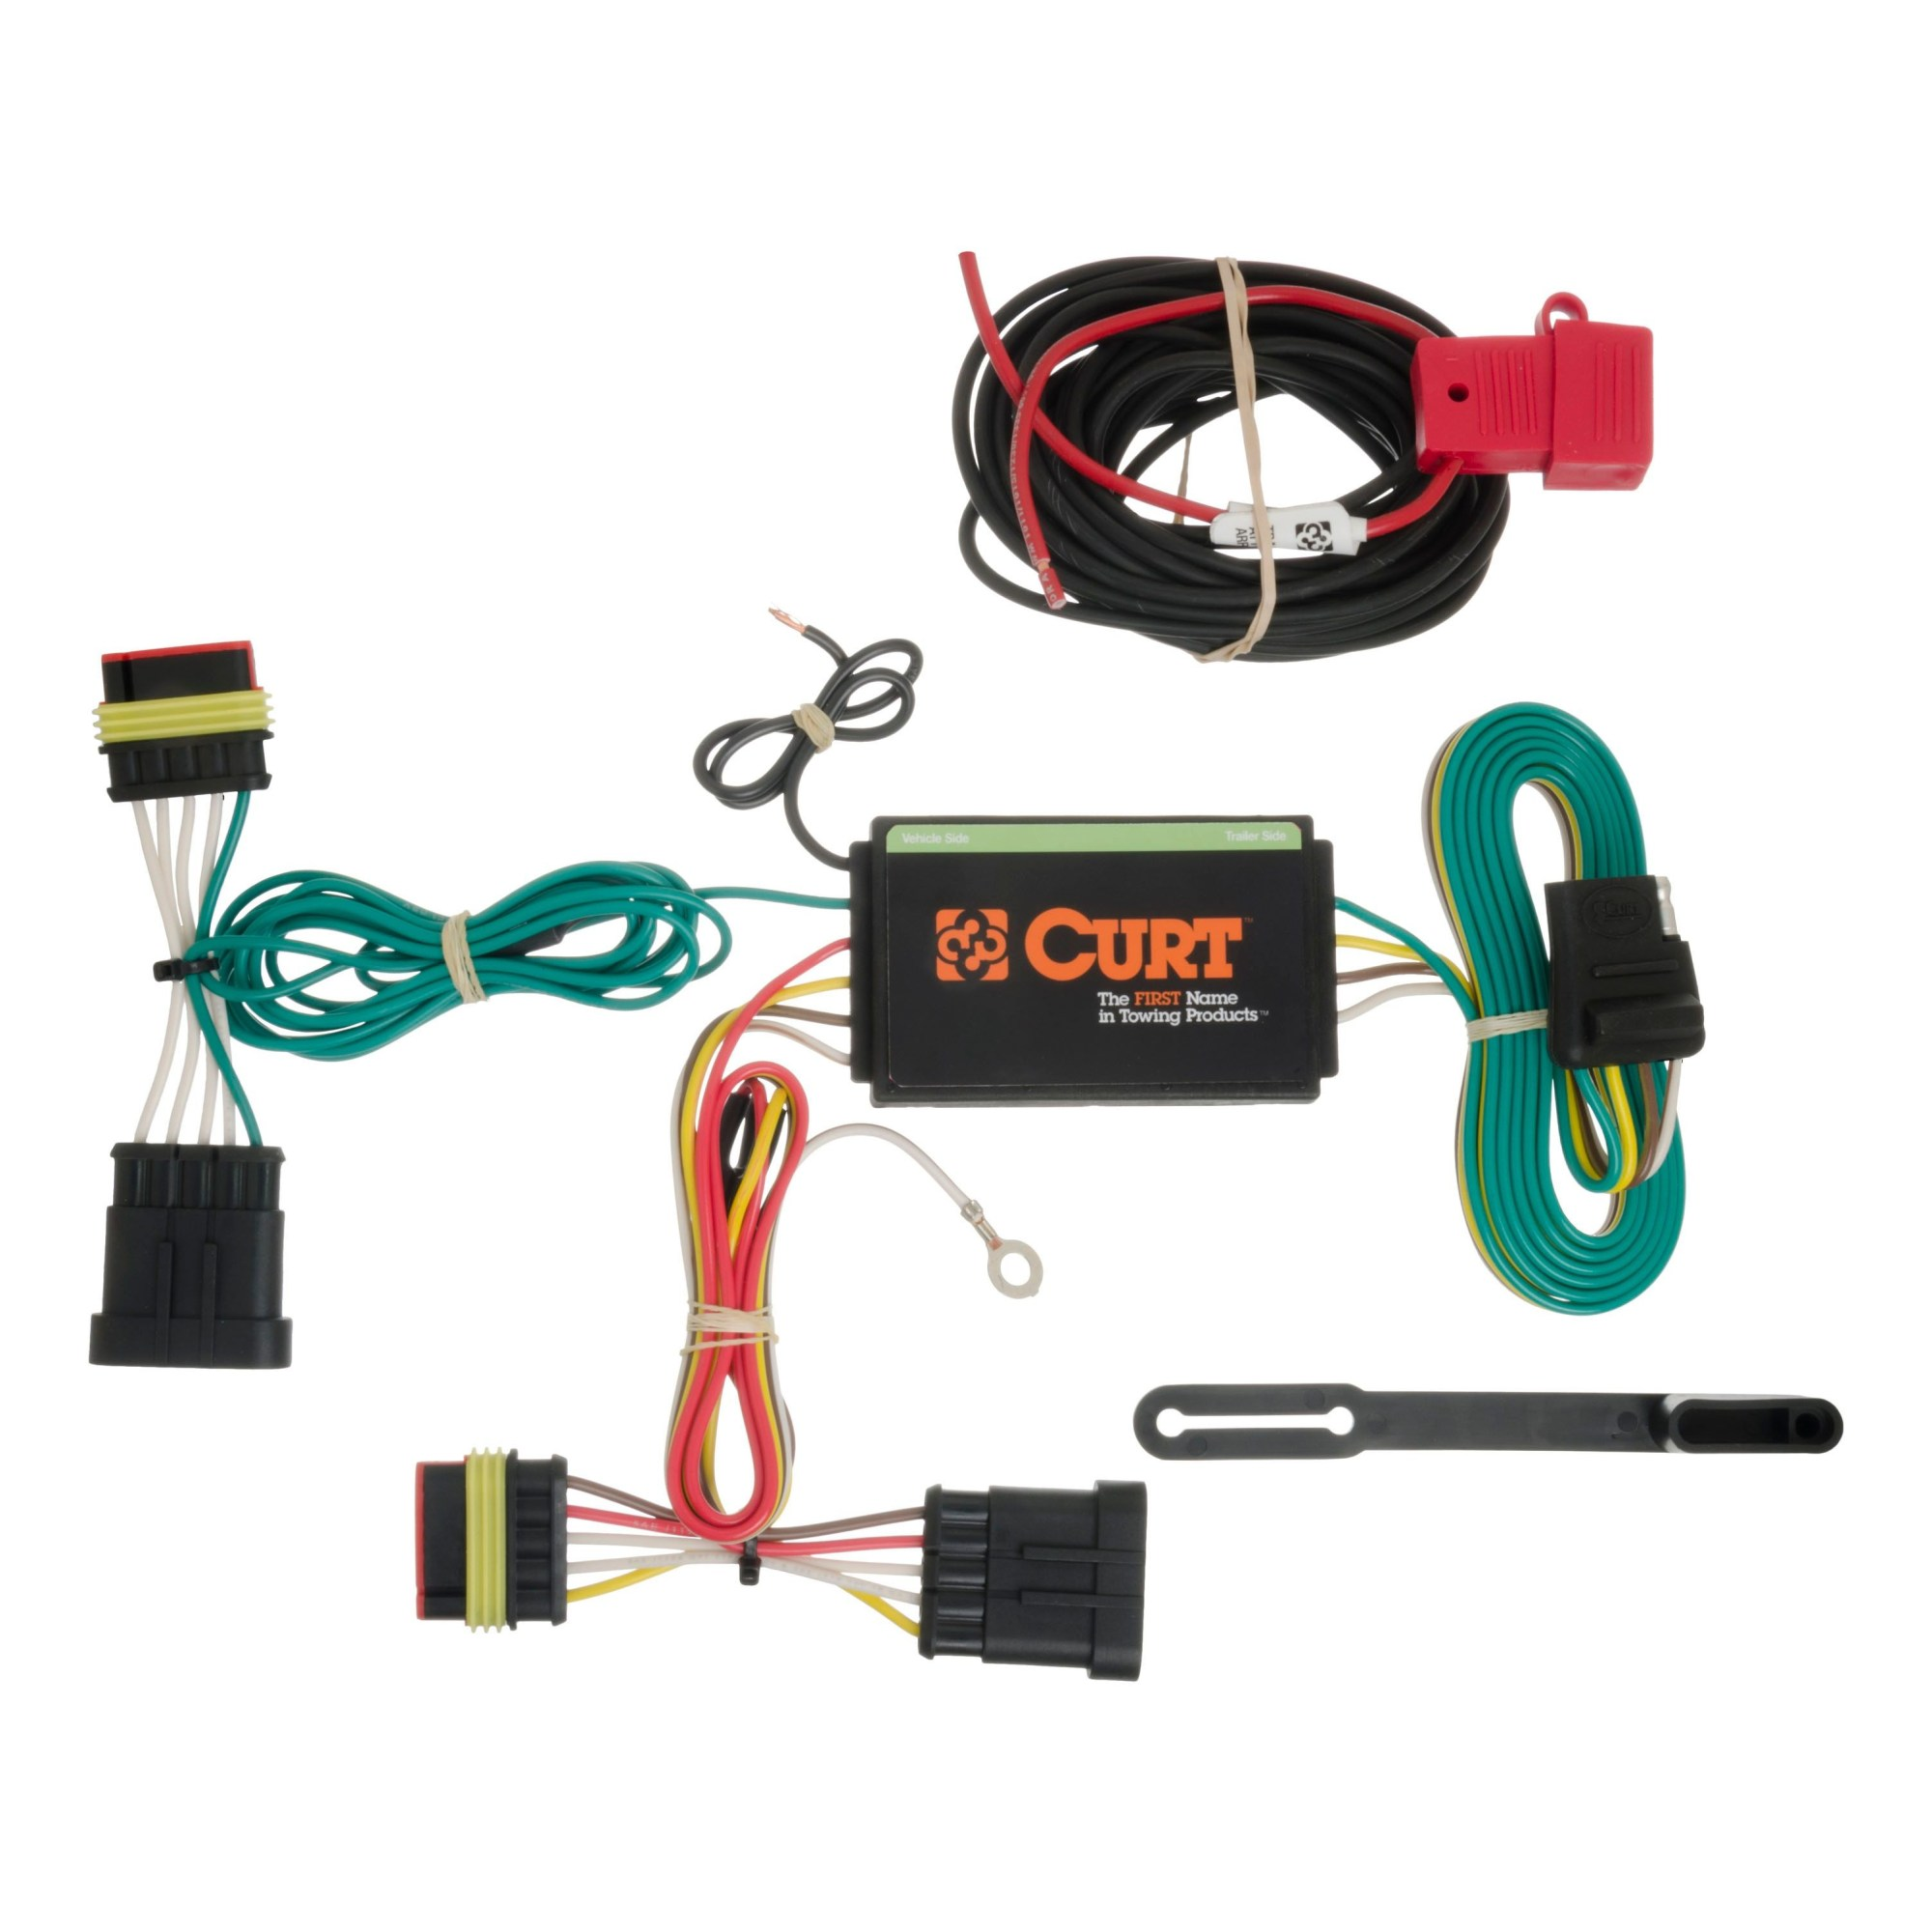 hight resolution of custom wiring custom wiring harness 4 way flat output theisen s home auto